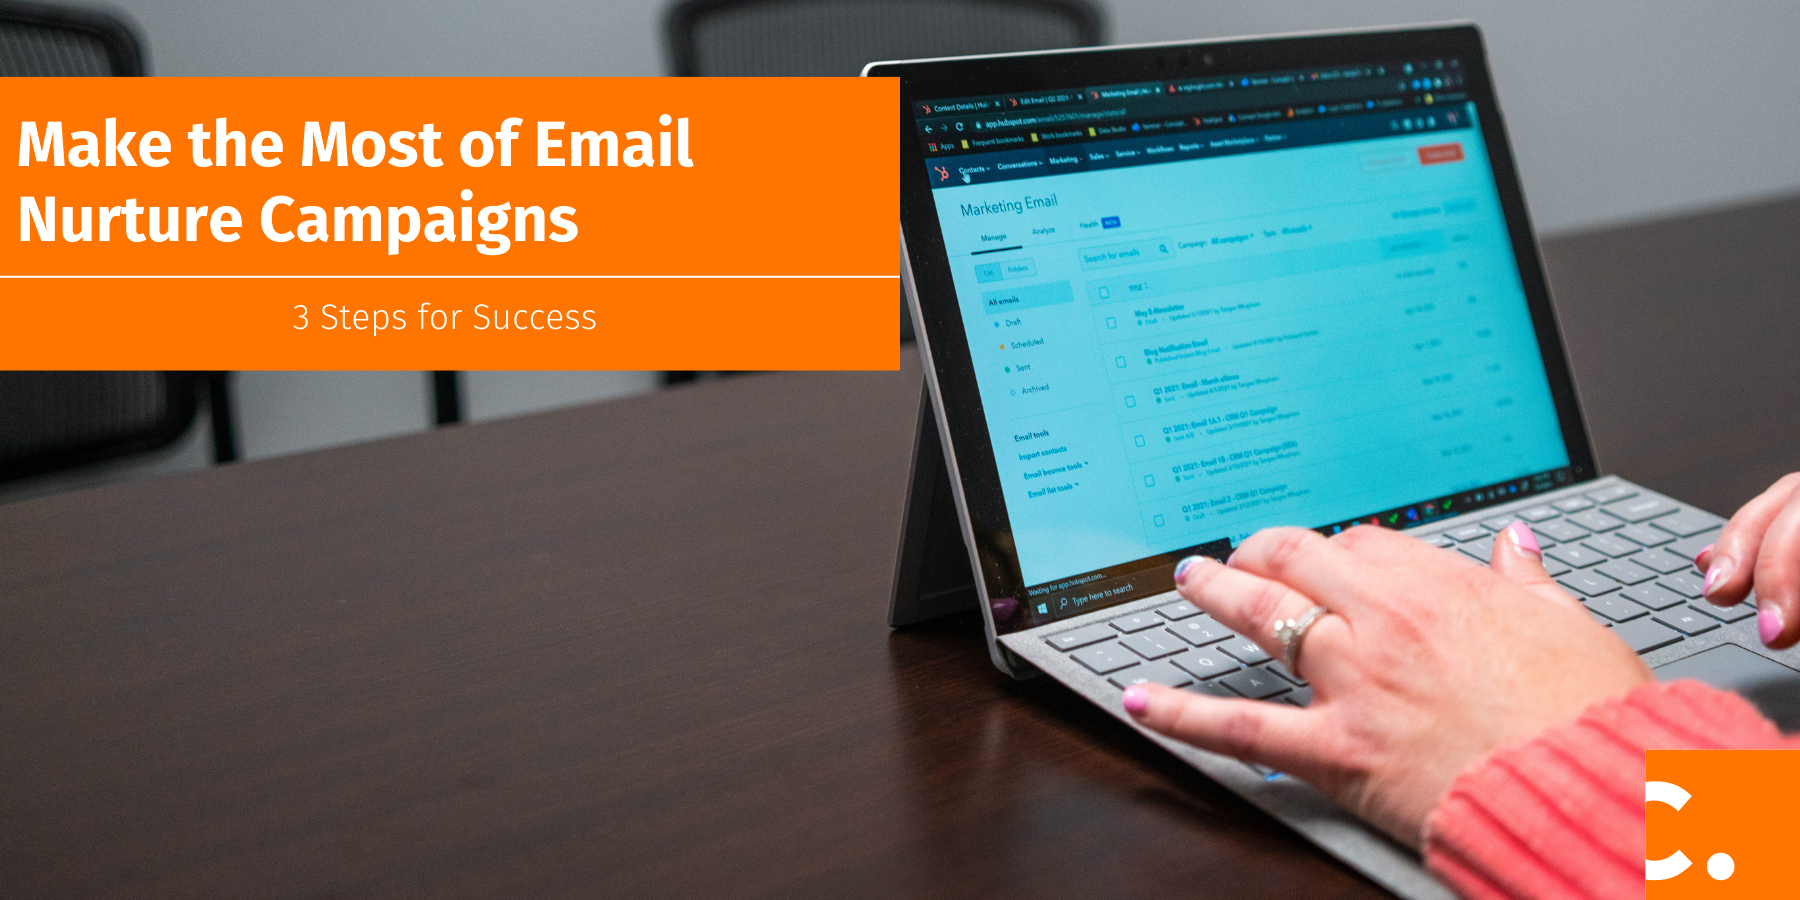 Email nurture campaigns are a great sales and marketing strategy to nuture leads through your sales process until they're ready to buy.